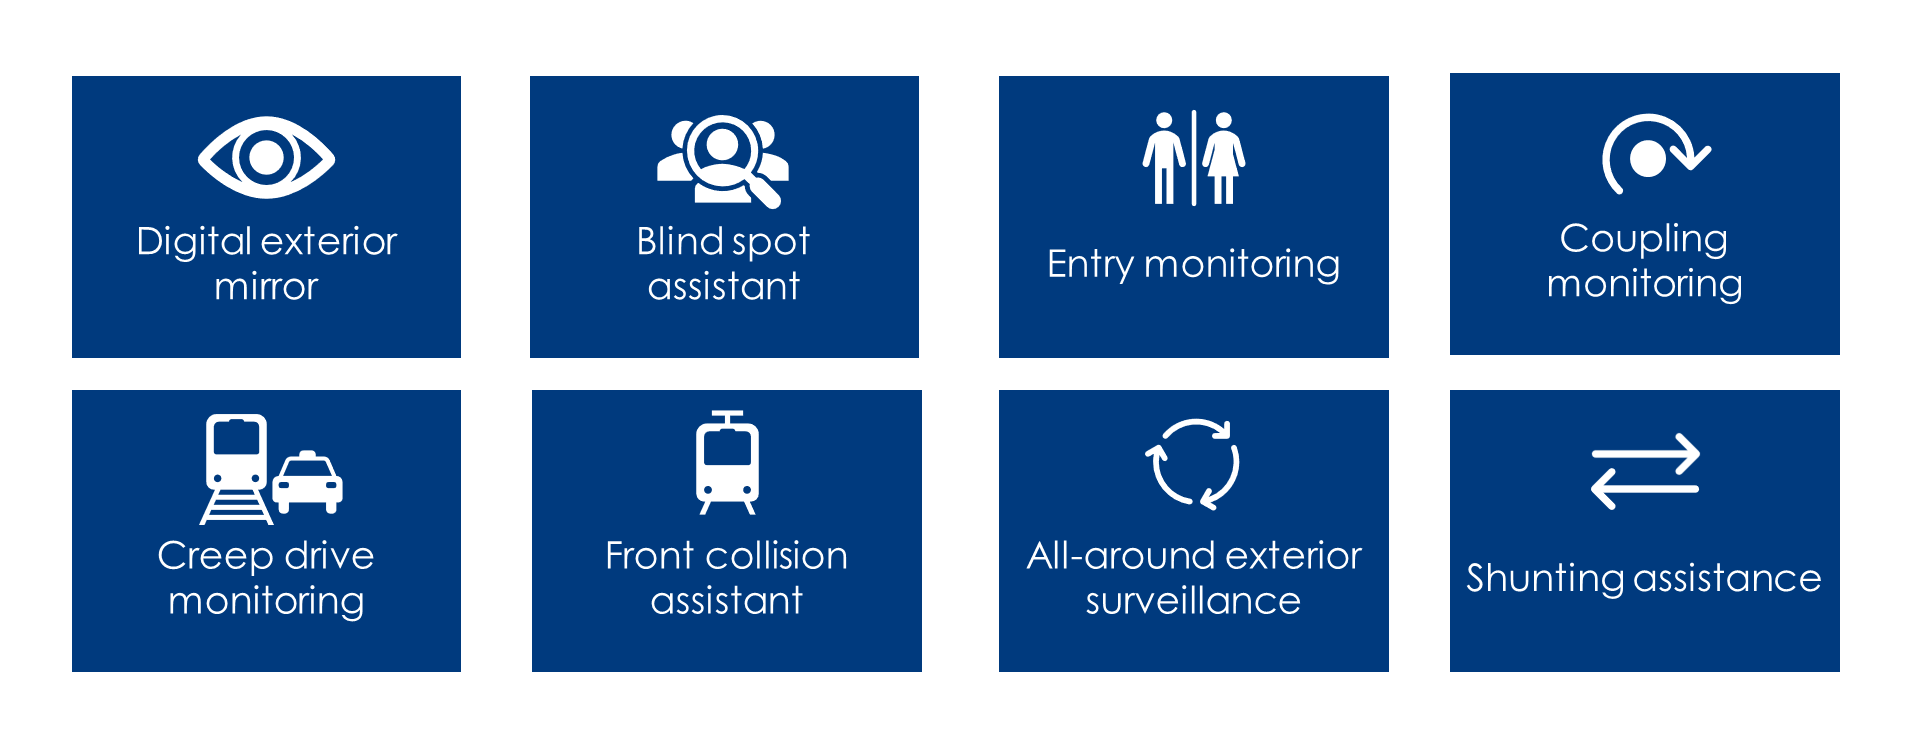 AI-driven, RailEye® 4 covers a side-mirror system with blind-spot-assistant for access surveillance, a silent running- and front collision surveillance system as well as coupling and shunt monitoring.